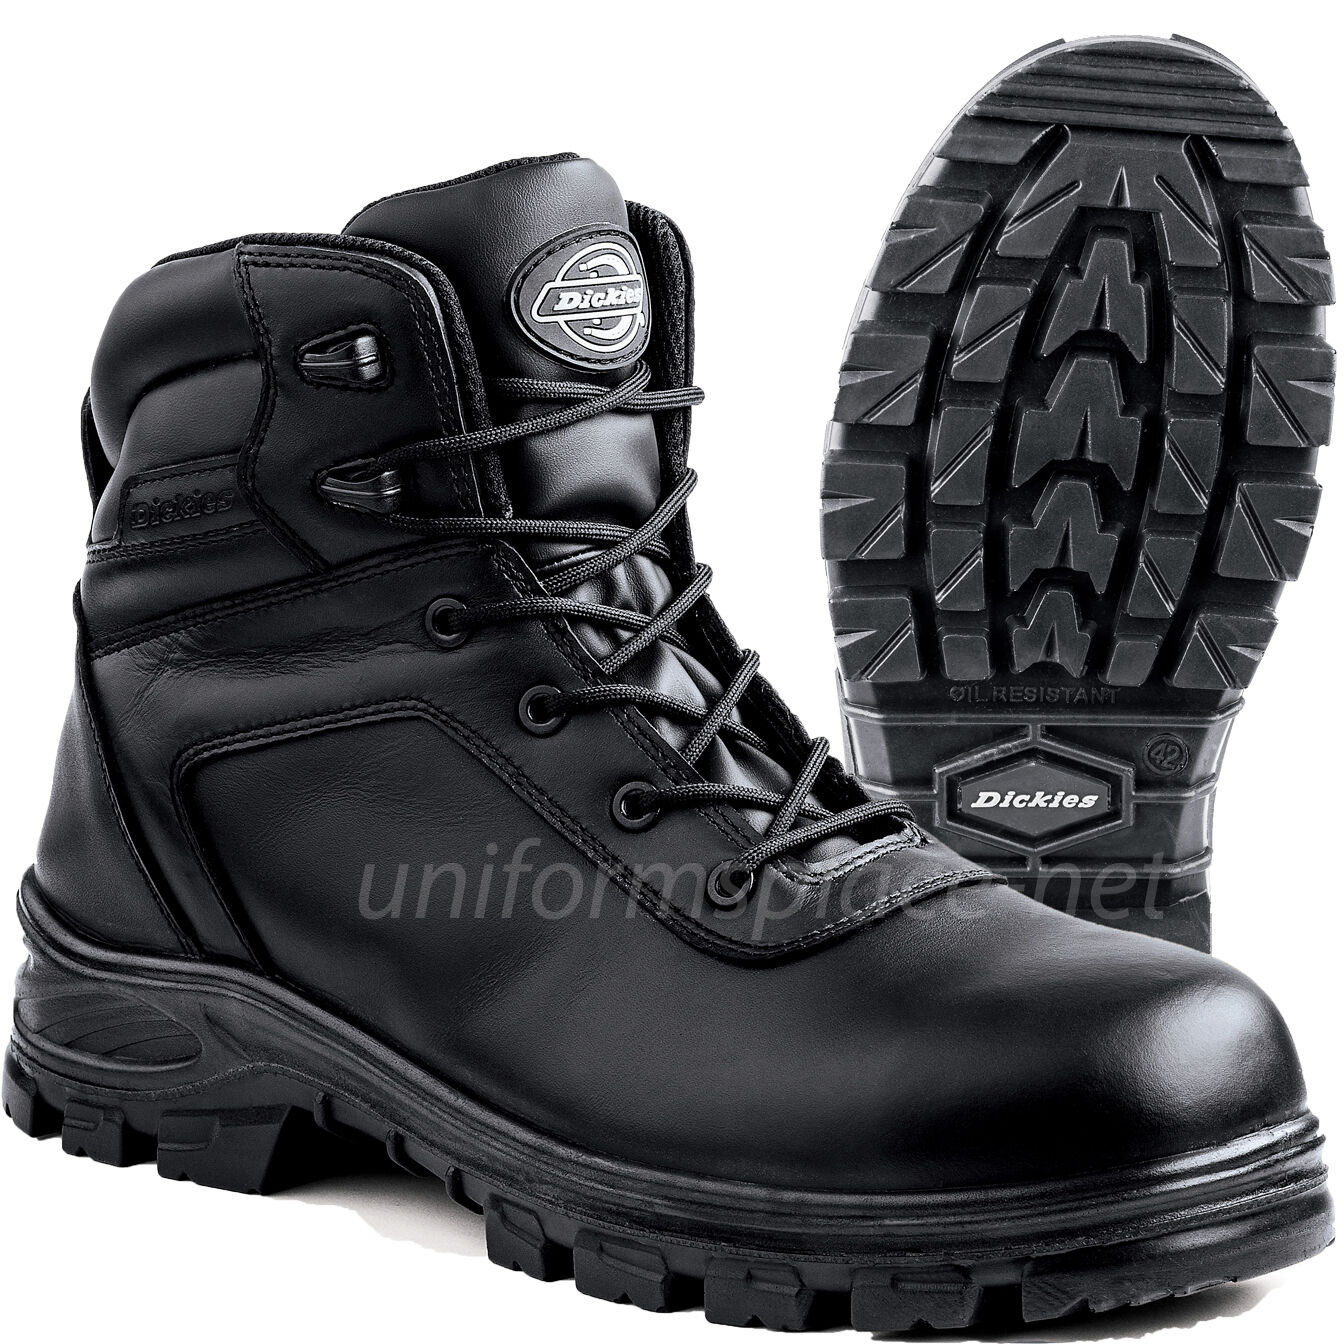 Dickies Work Boots Mens Lance Composite Safety Toe Leather Work Boot DW6335